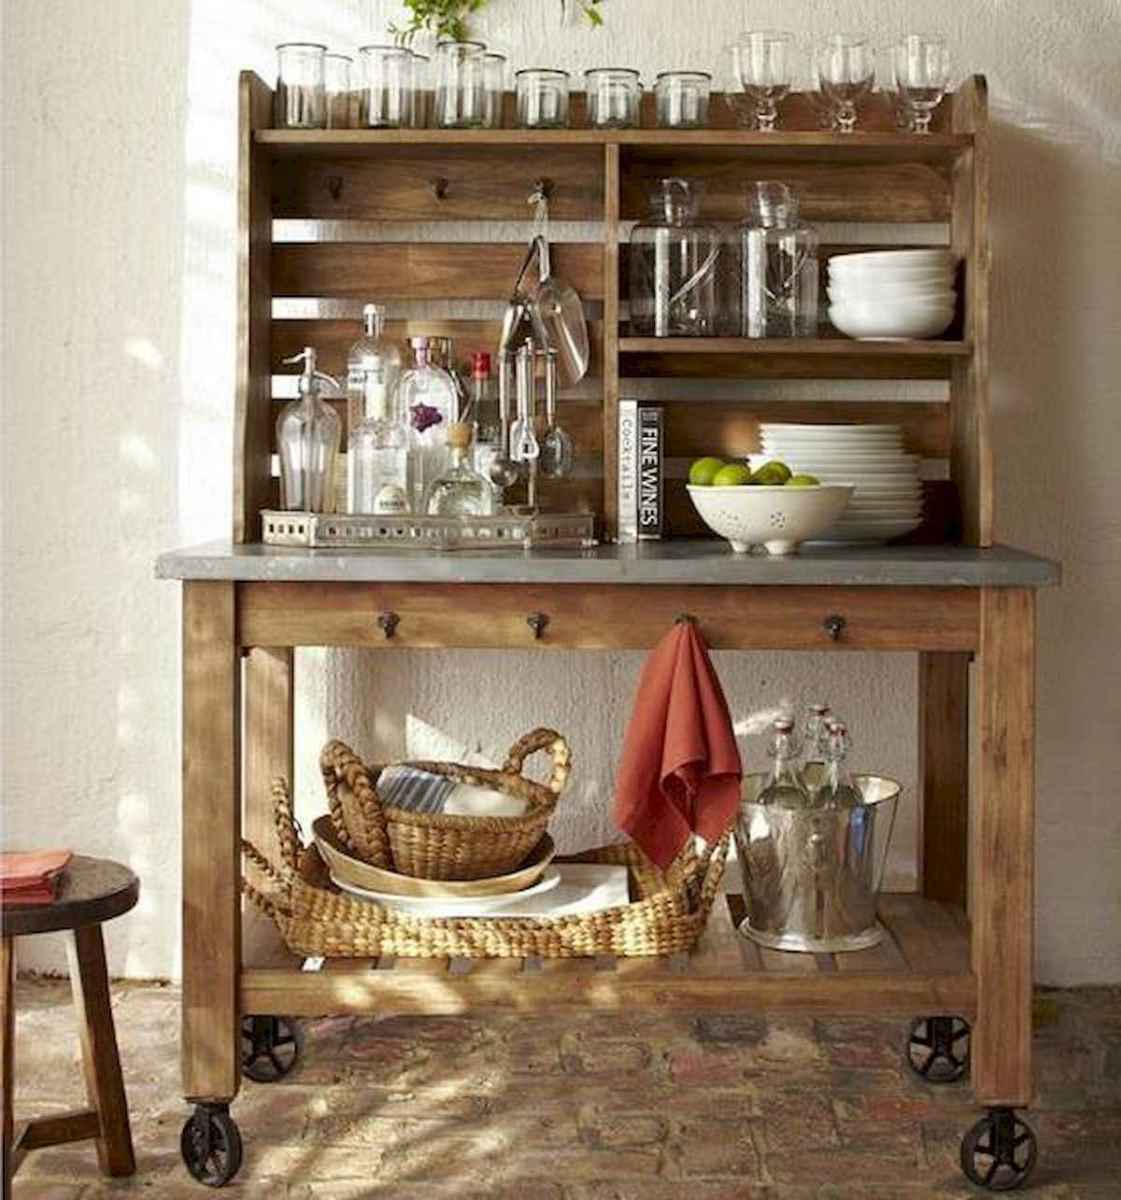 32 Awesome DIY Mini Coffee Bar Design Ideas For Your Home (25)